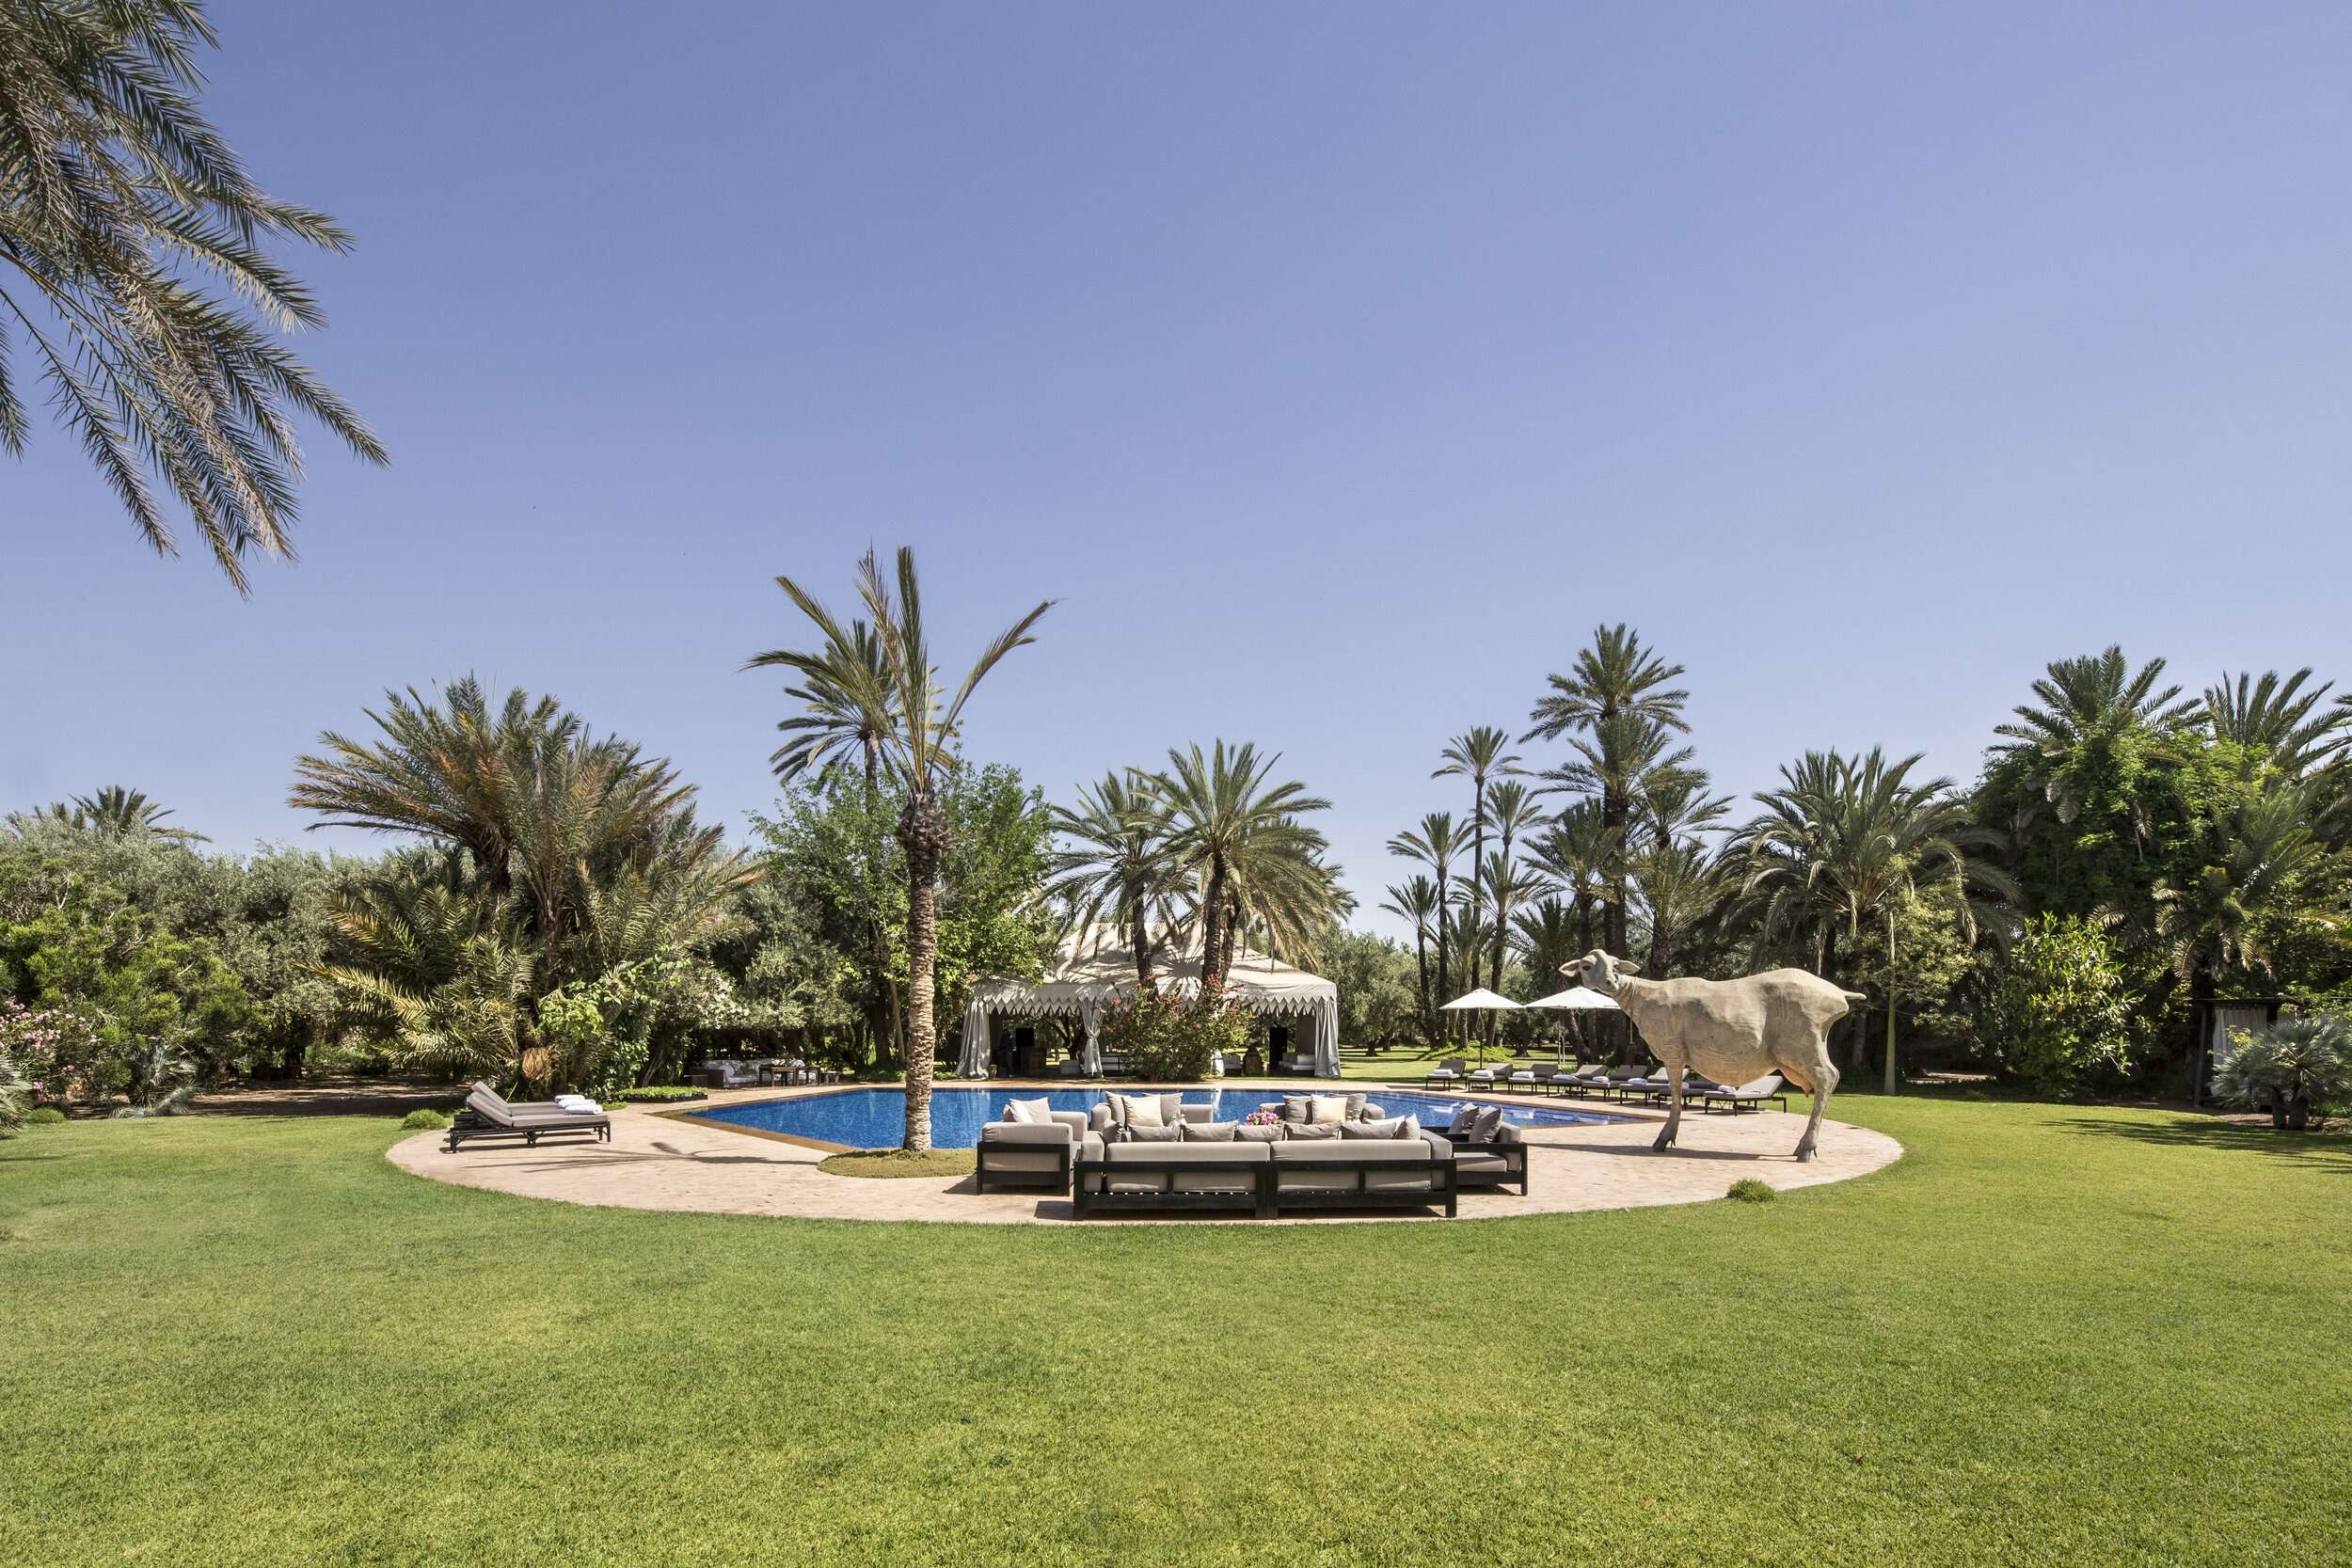 beautiful garden and pool at the house designed by French contemporary artist Jean-François Fourtou